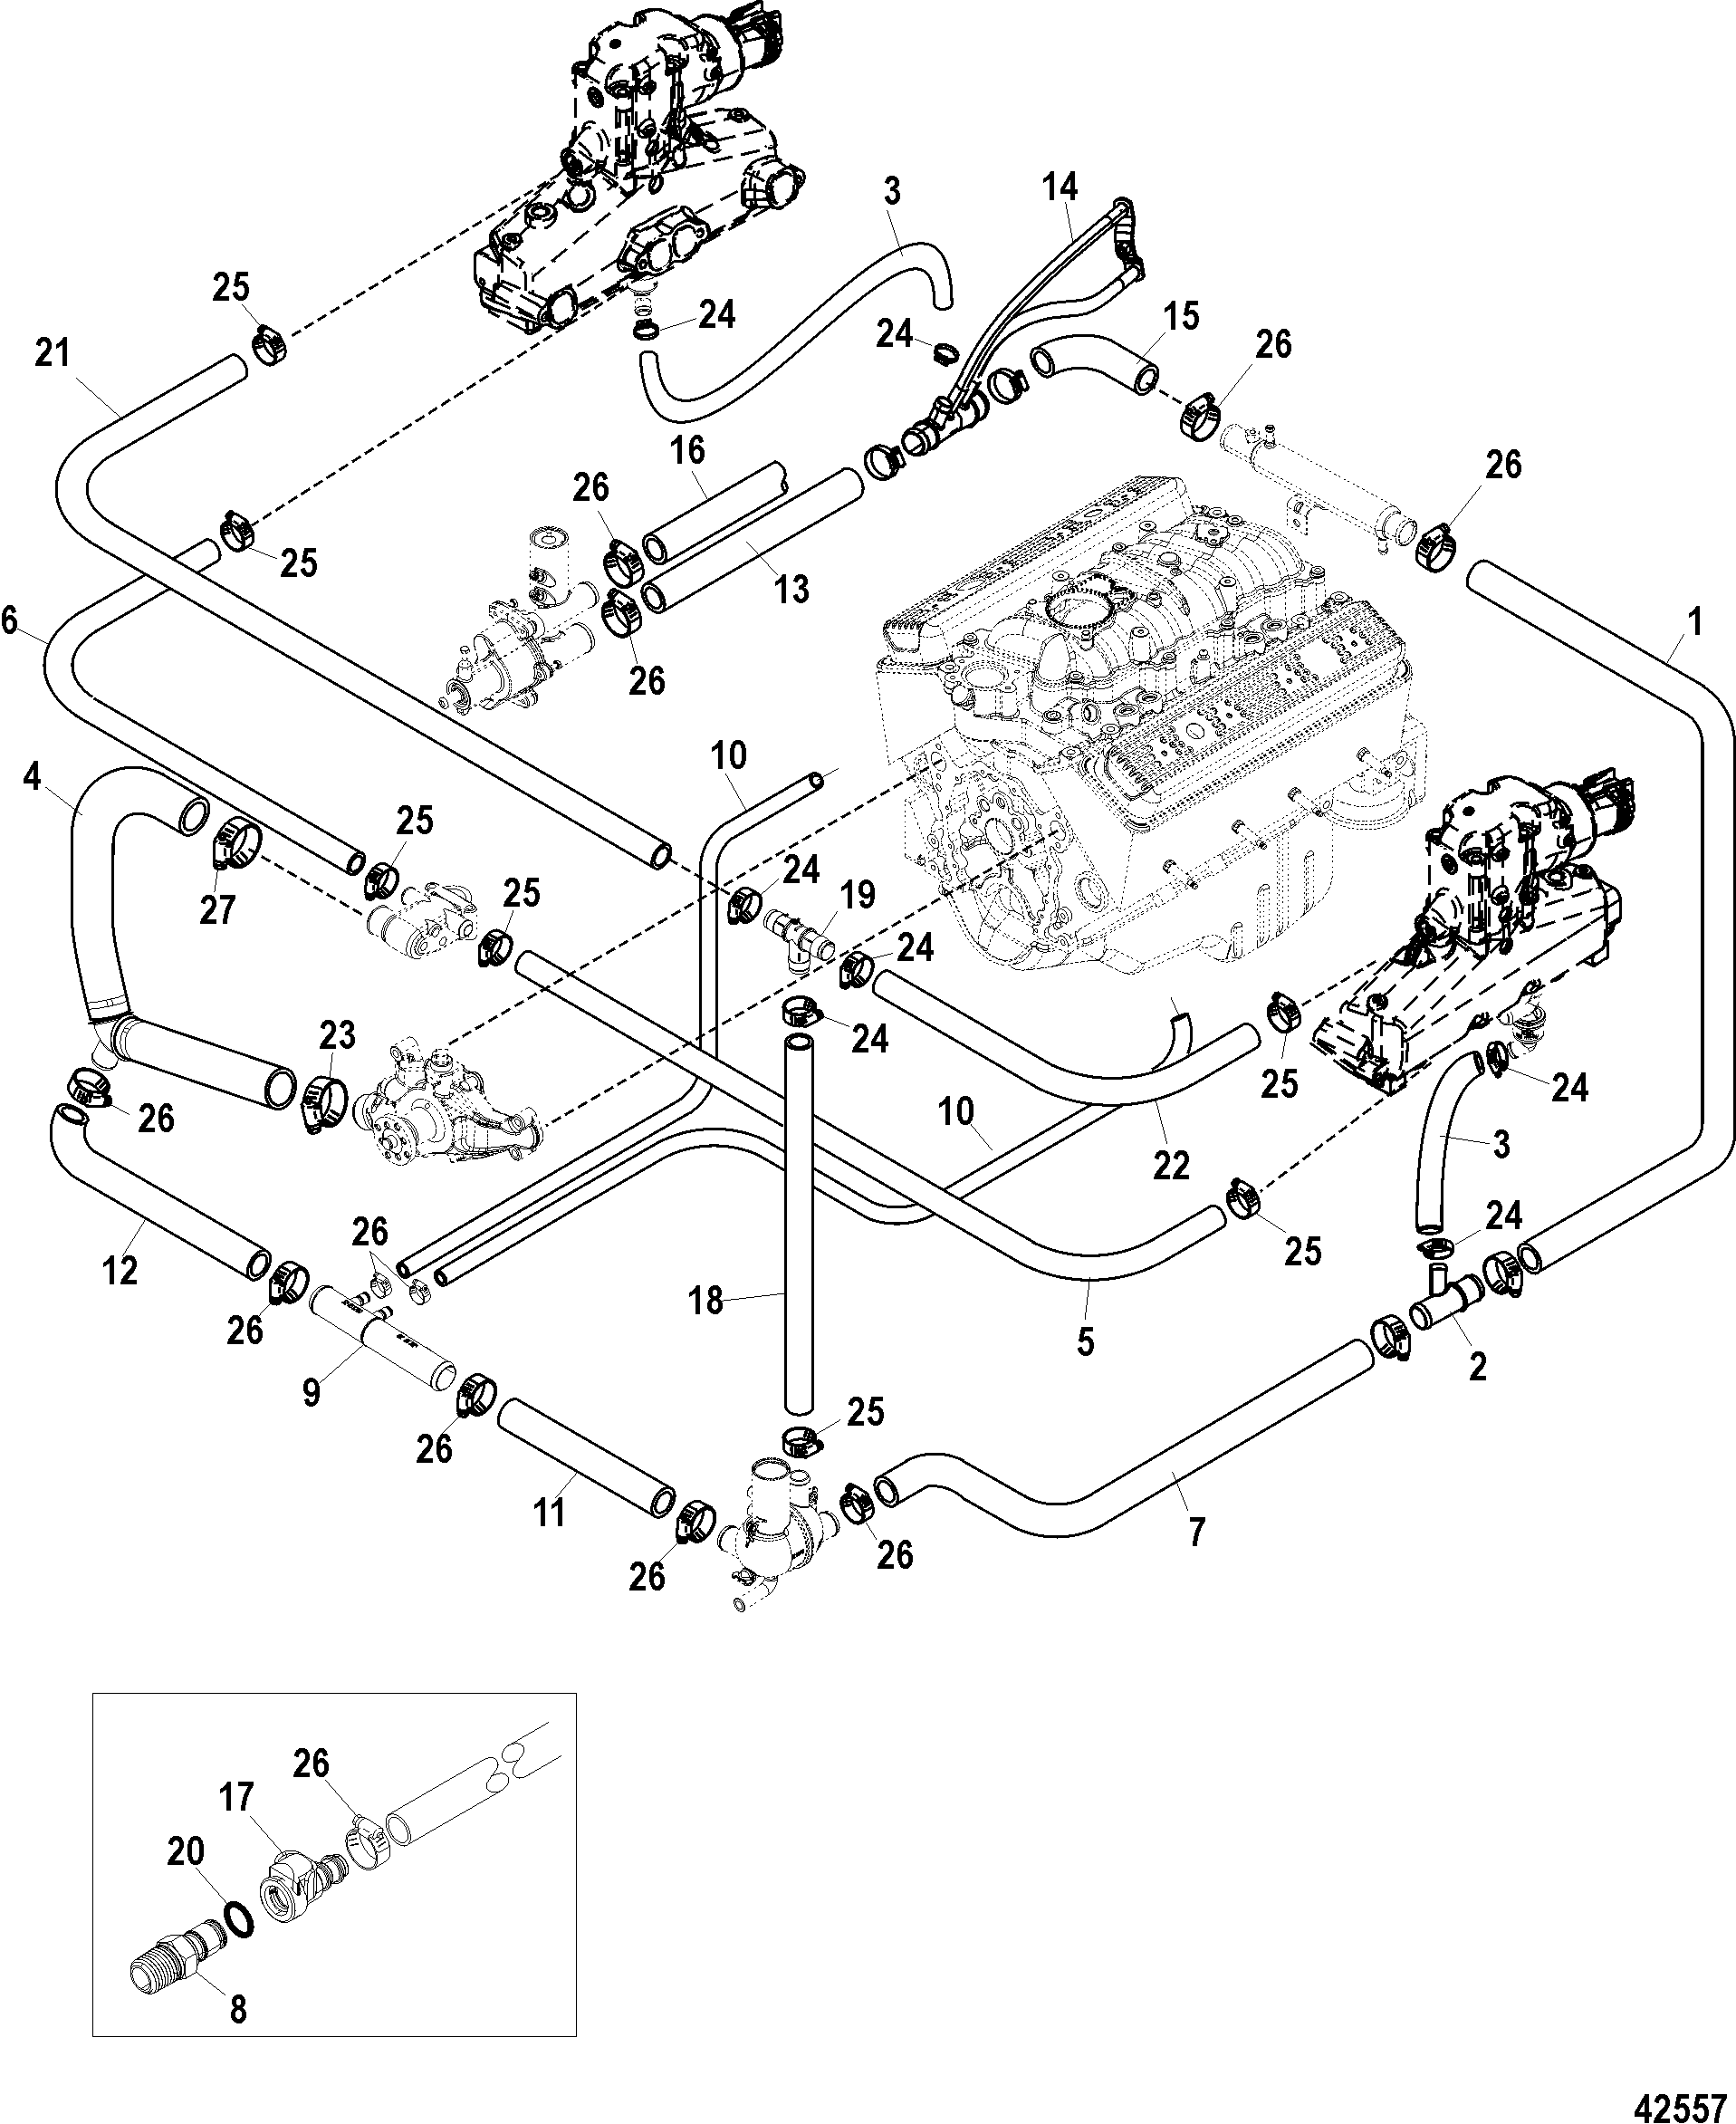 2000 Chevy Tahoe Radiator Diagram Trusted Wiring 2002 Heater 1998 For 1999 1997